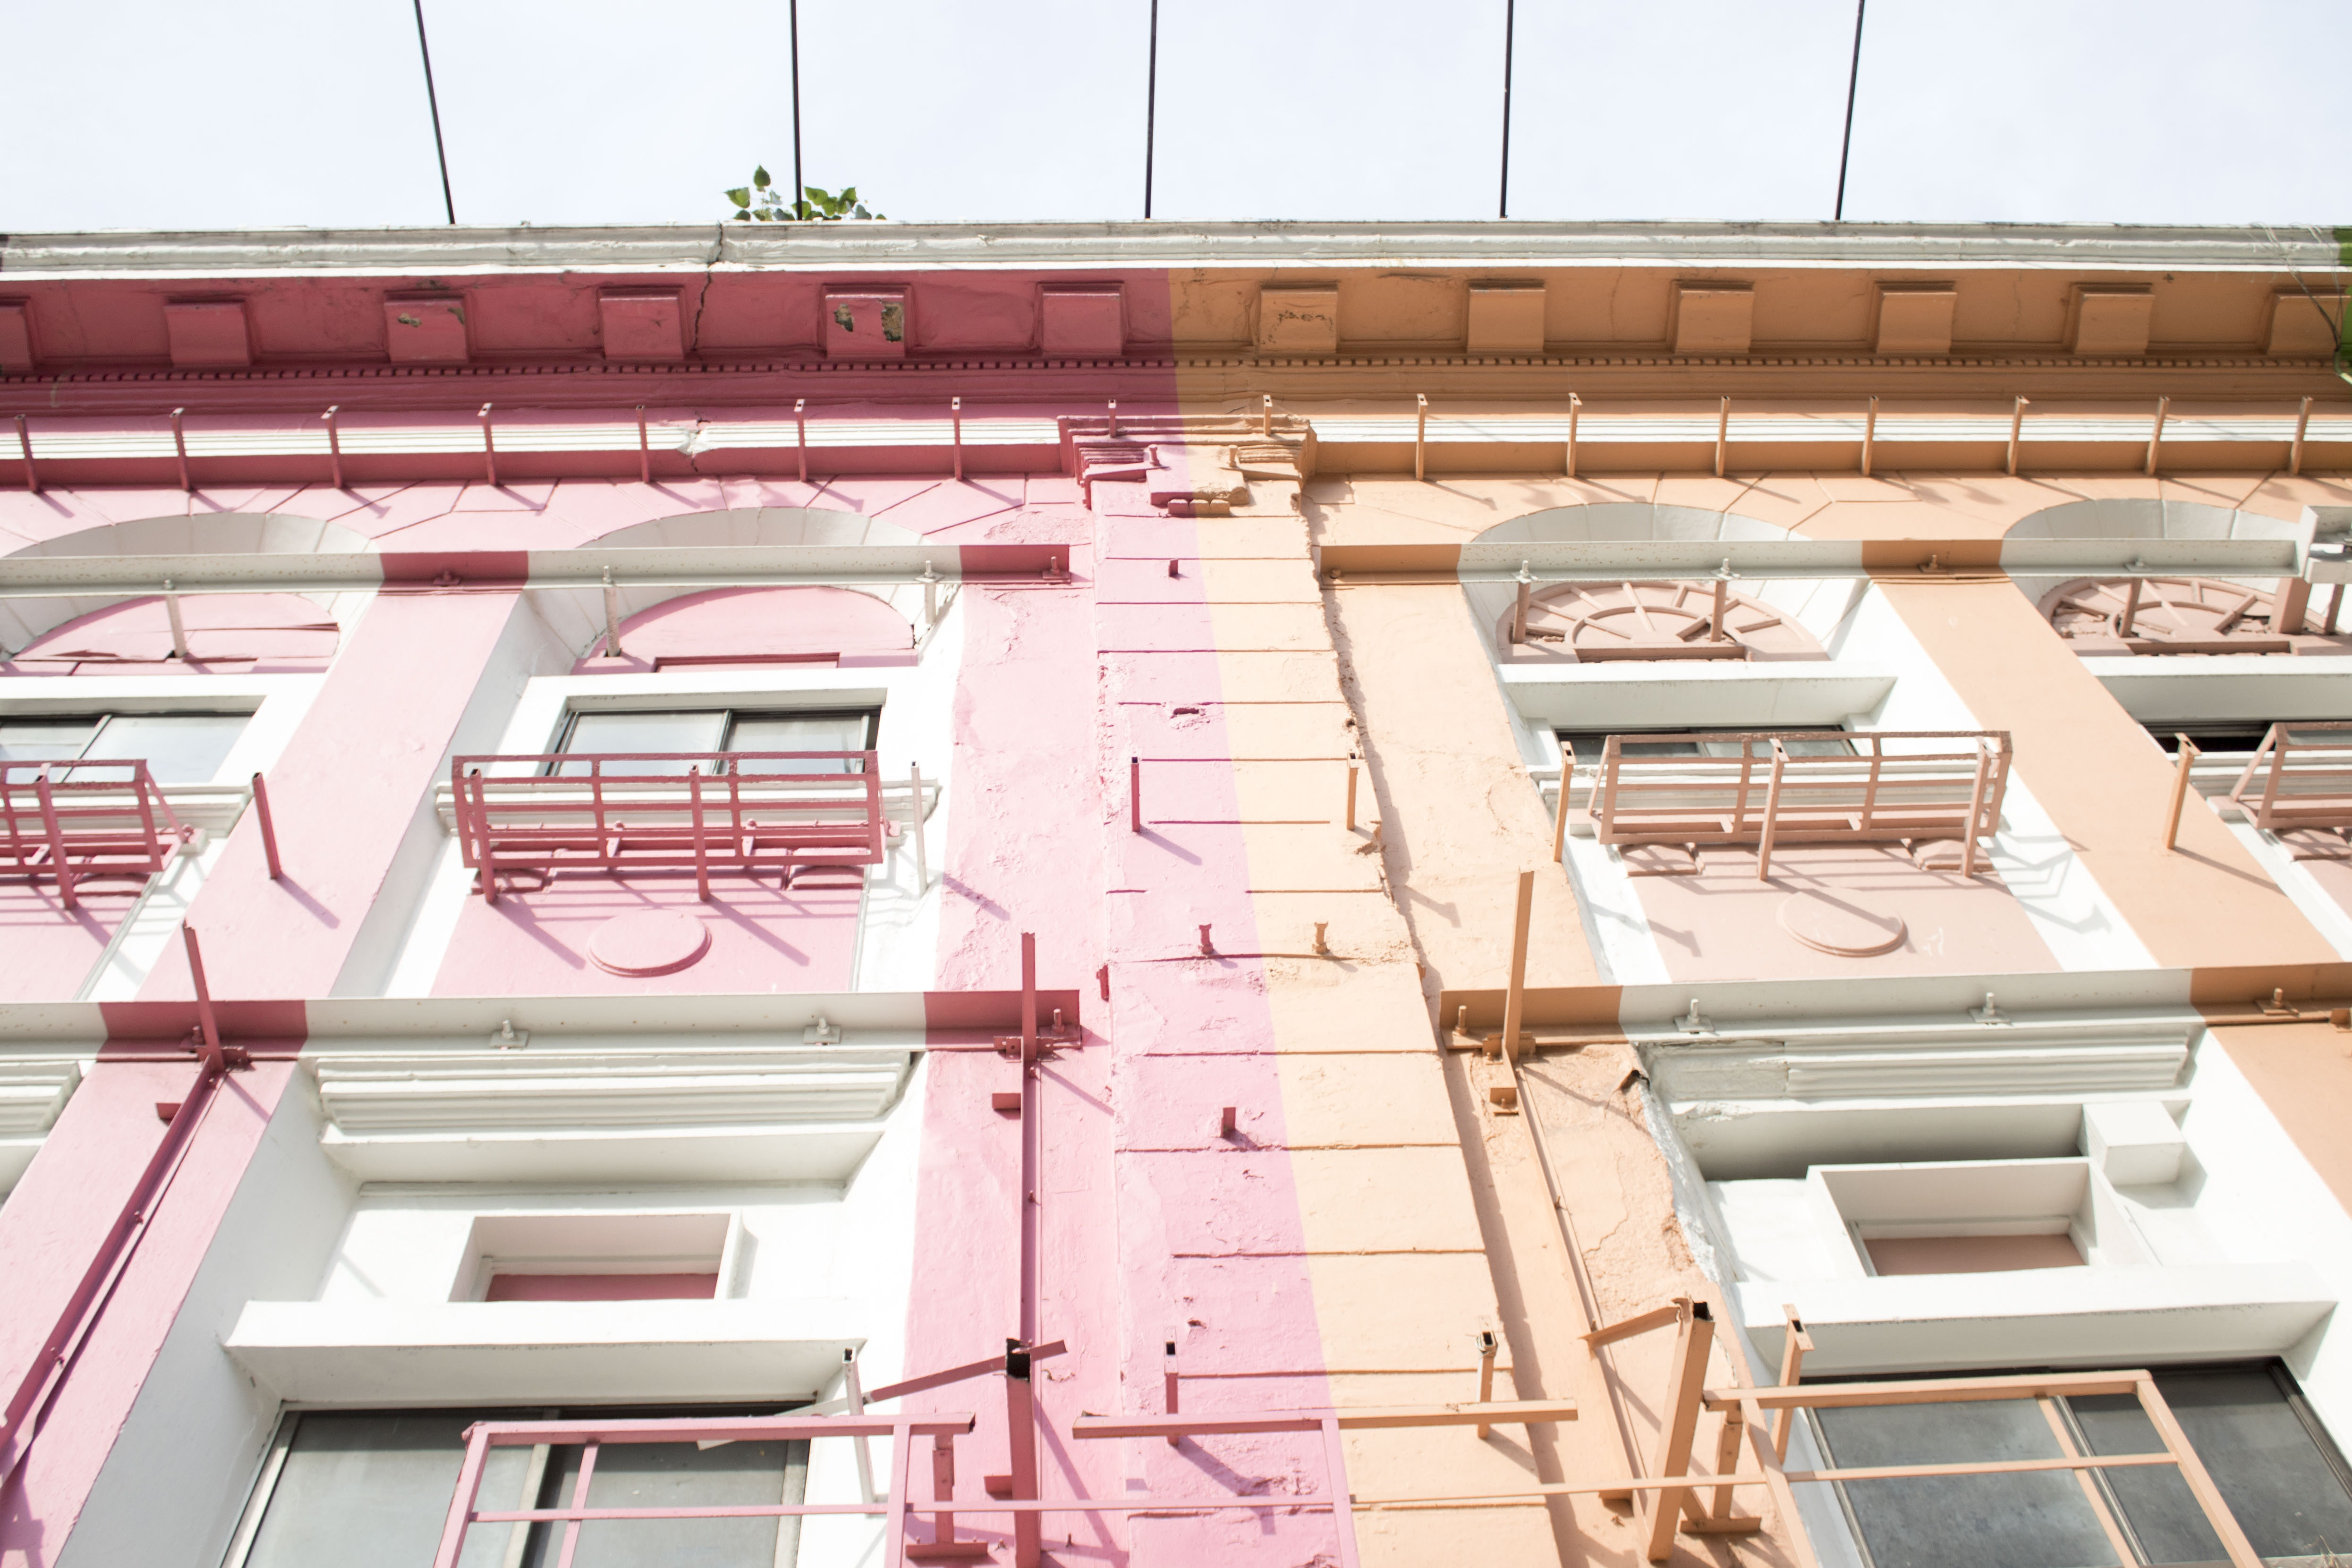 pink and orange painted building